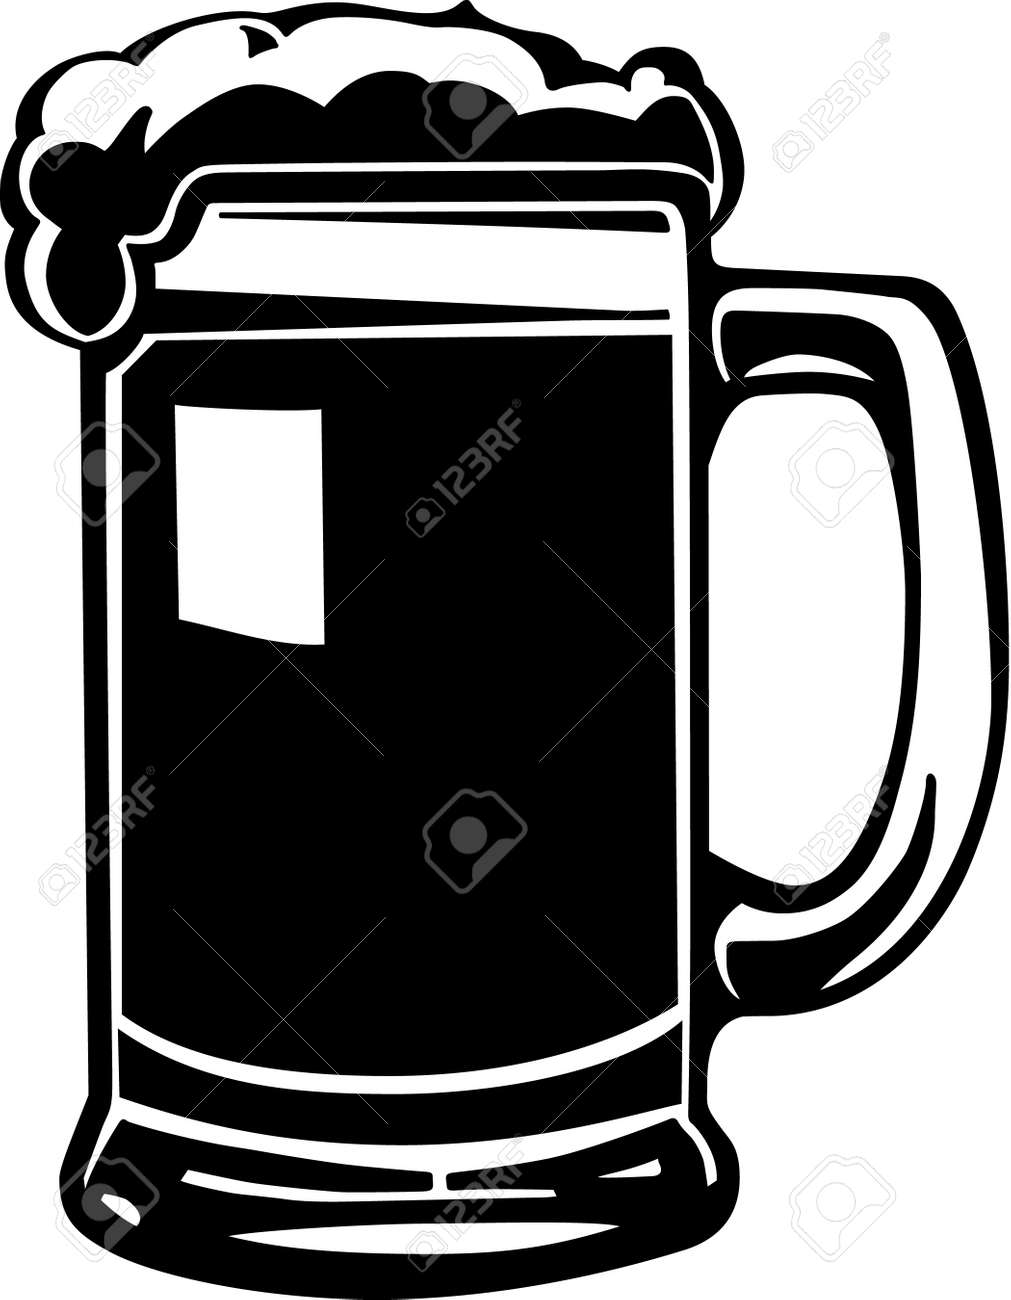 beer mug royalty free cliparts vectors and stock illustration rh 123rf com beer stein clipart black and white german beer stein clipart